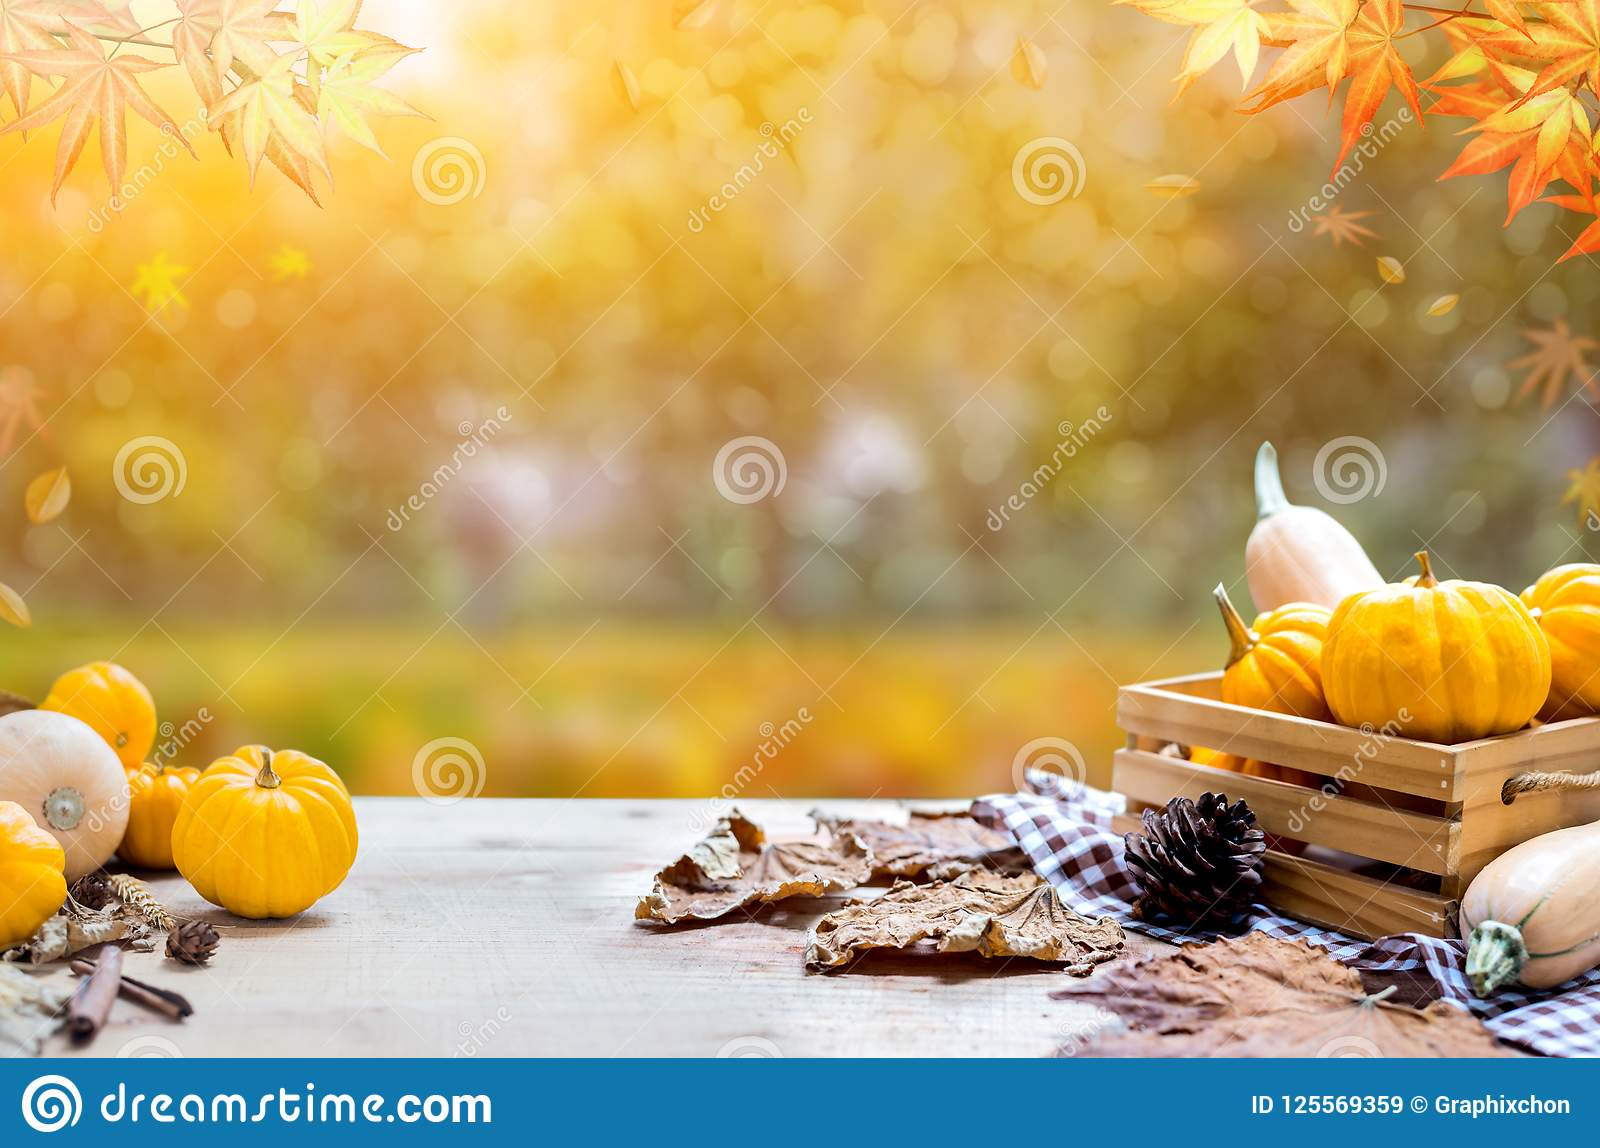 Thanksgiving background in autumn and fall